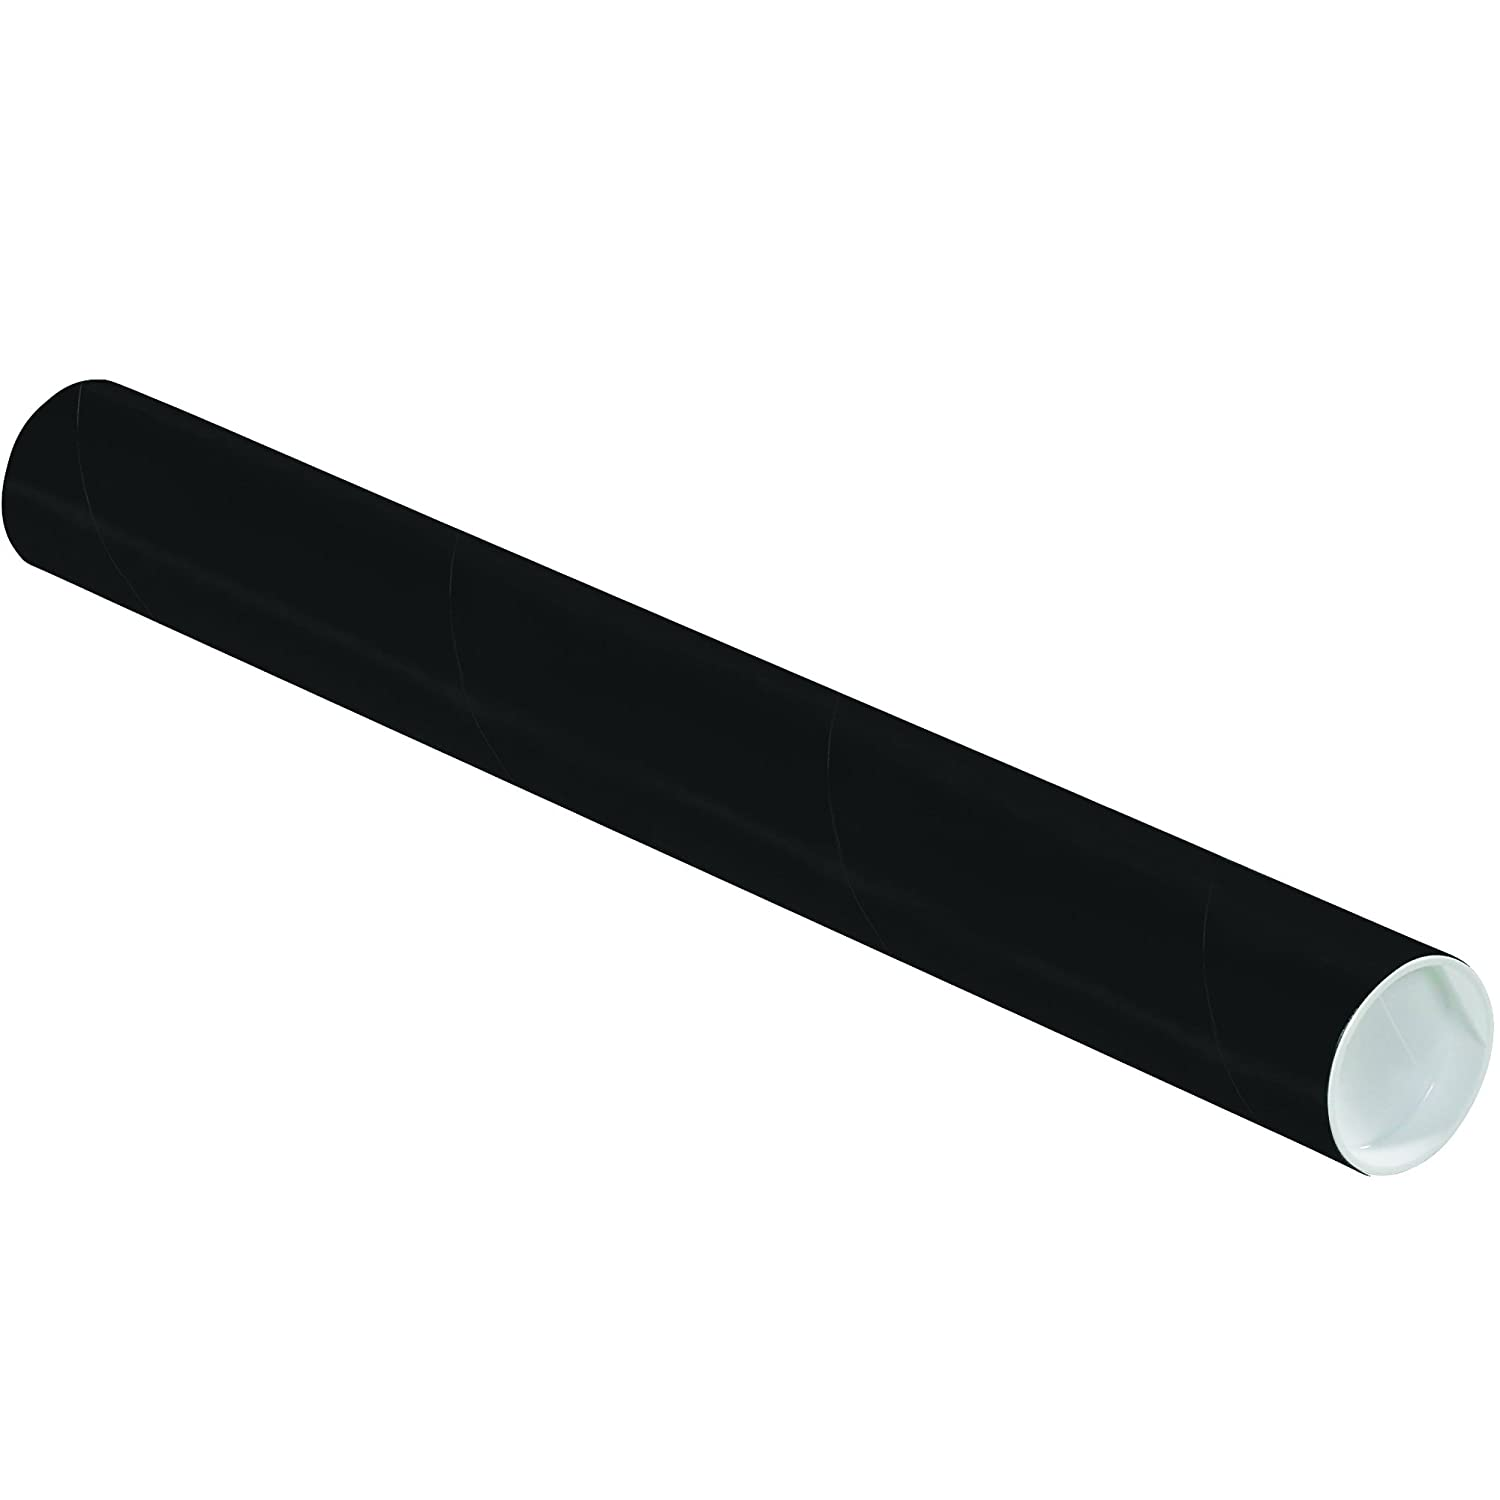 Ship Now Supply SNP2018BL Mailing Tubes with Caps 2 x 18 Black Pack of 50